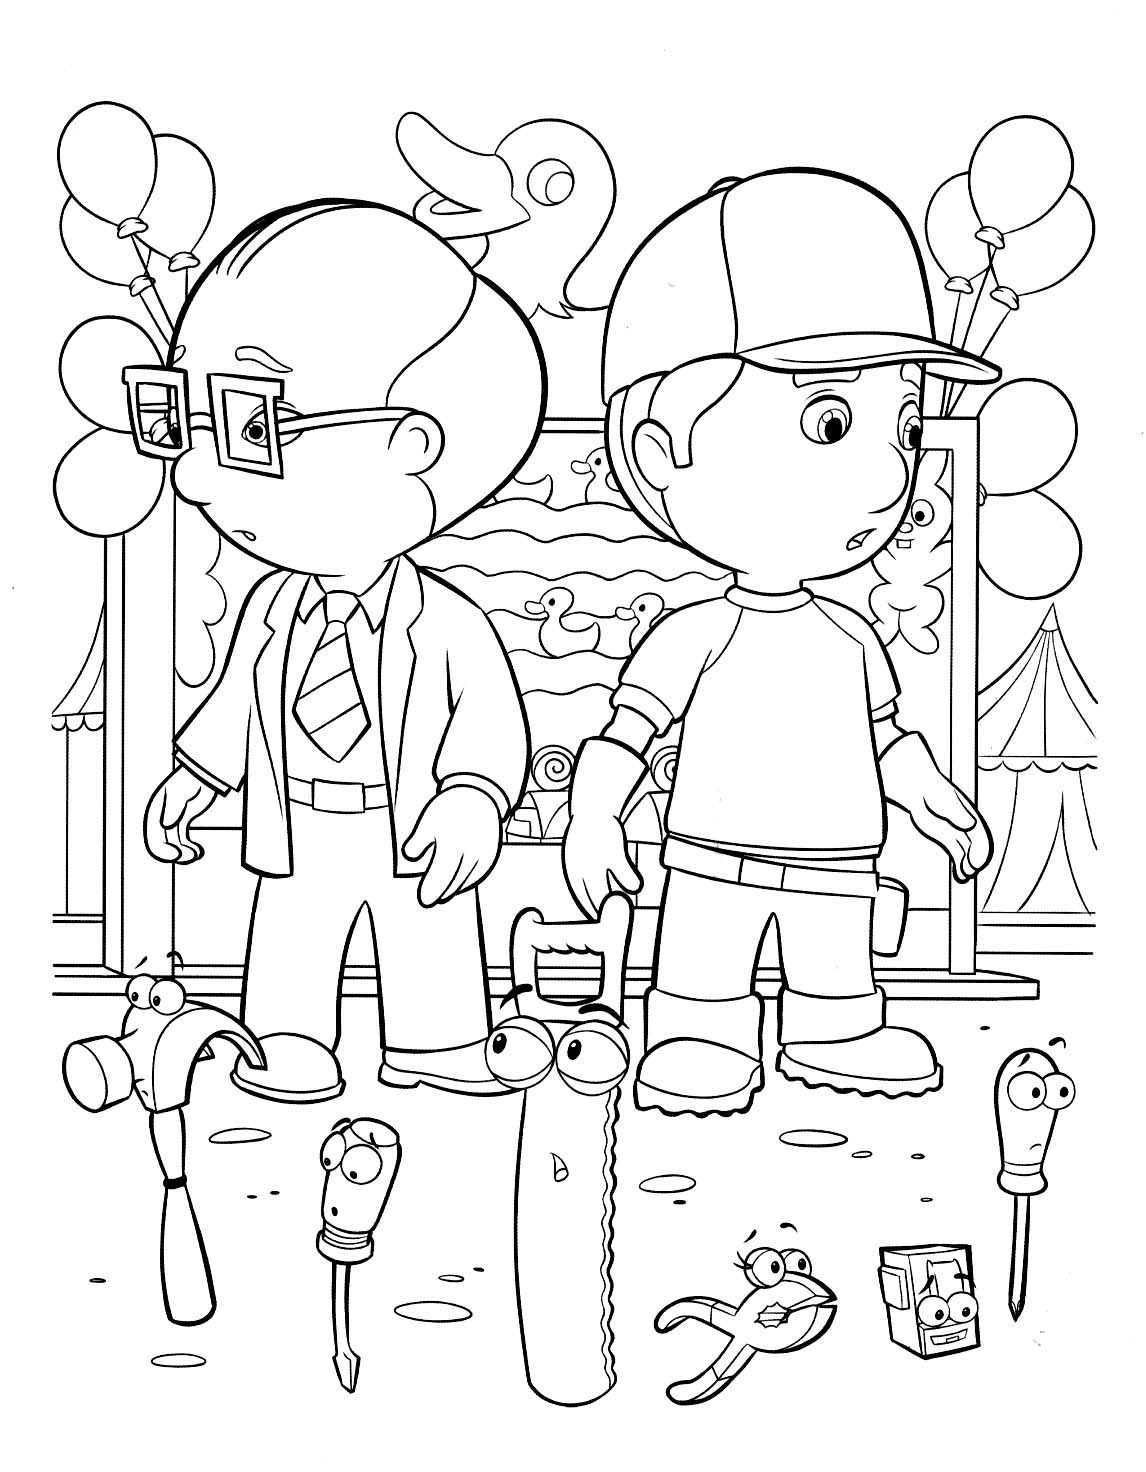 Handy Manny To Print For Free Handy Manny Kids Coloring Pages - Handy-manny-coloring-page